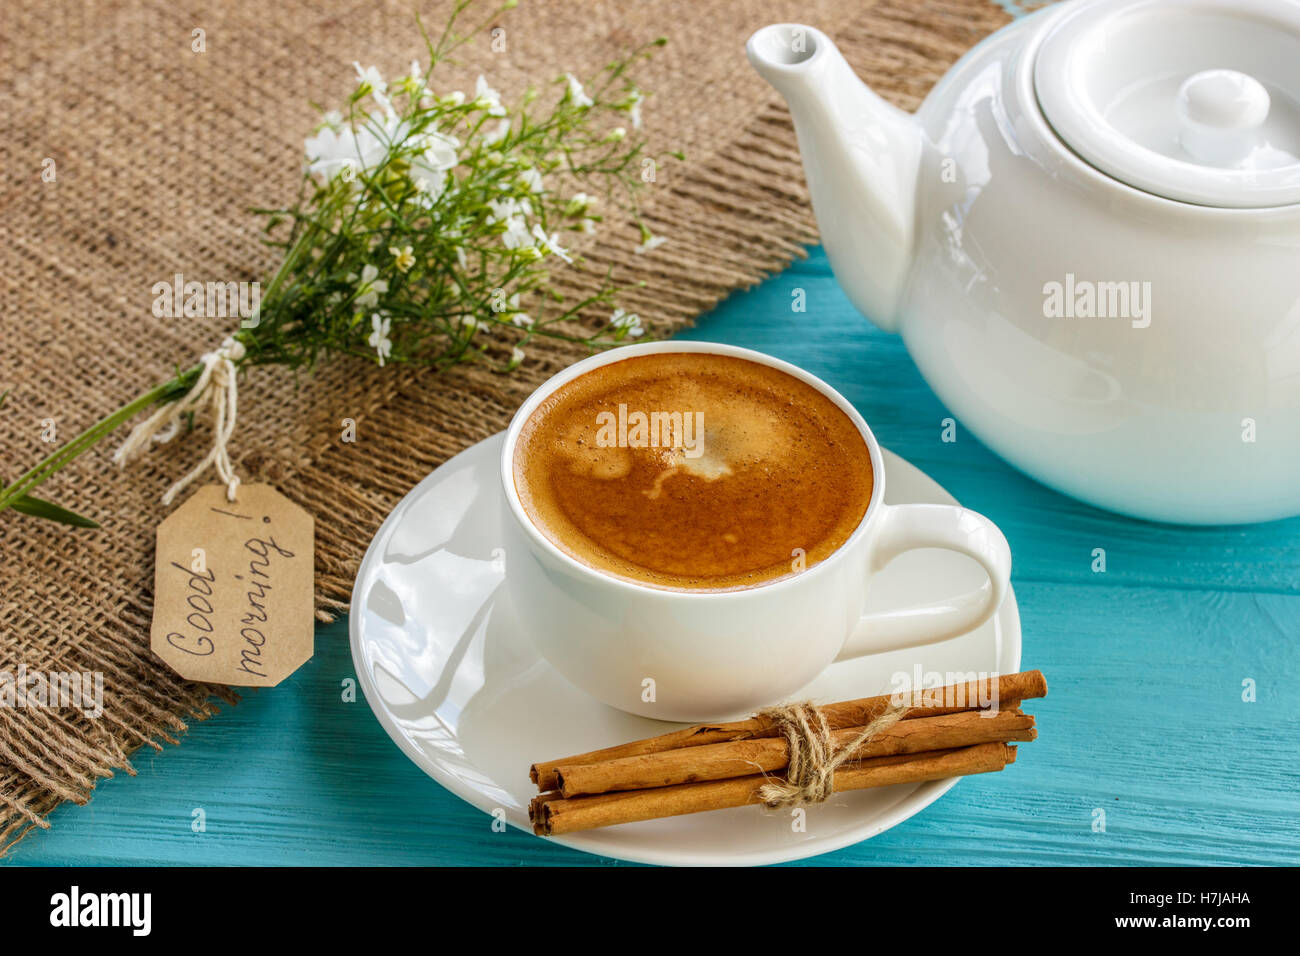 Coffee mug with white flowers and notes good morning on blue rustic table from above, breakfast - Stock Image